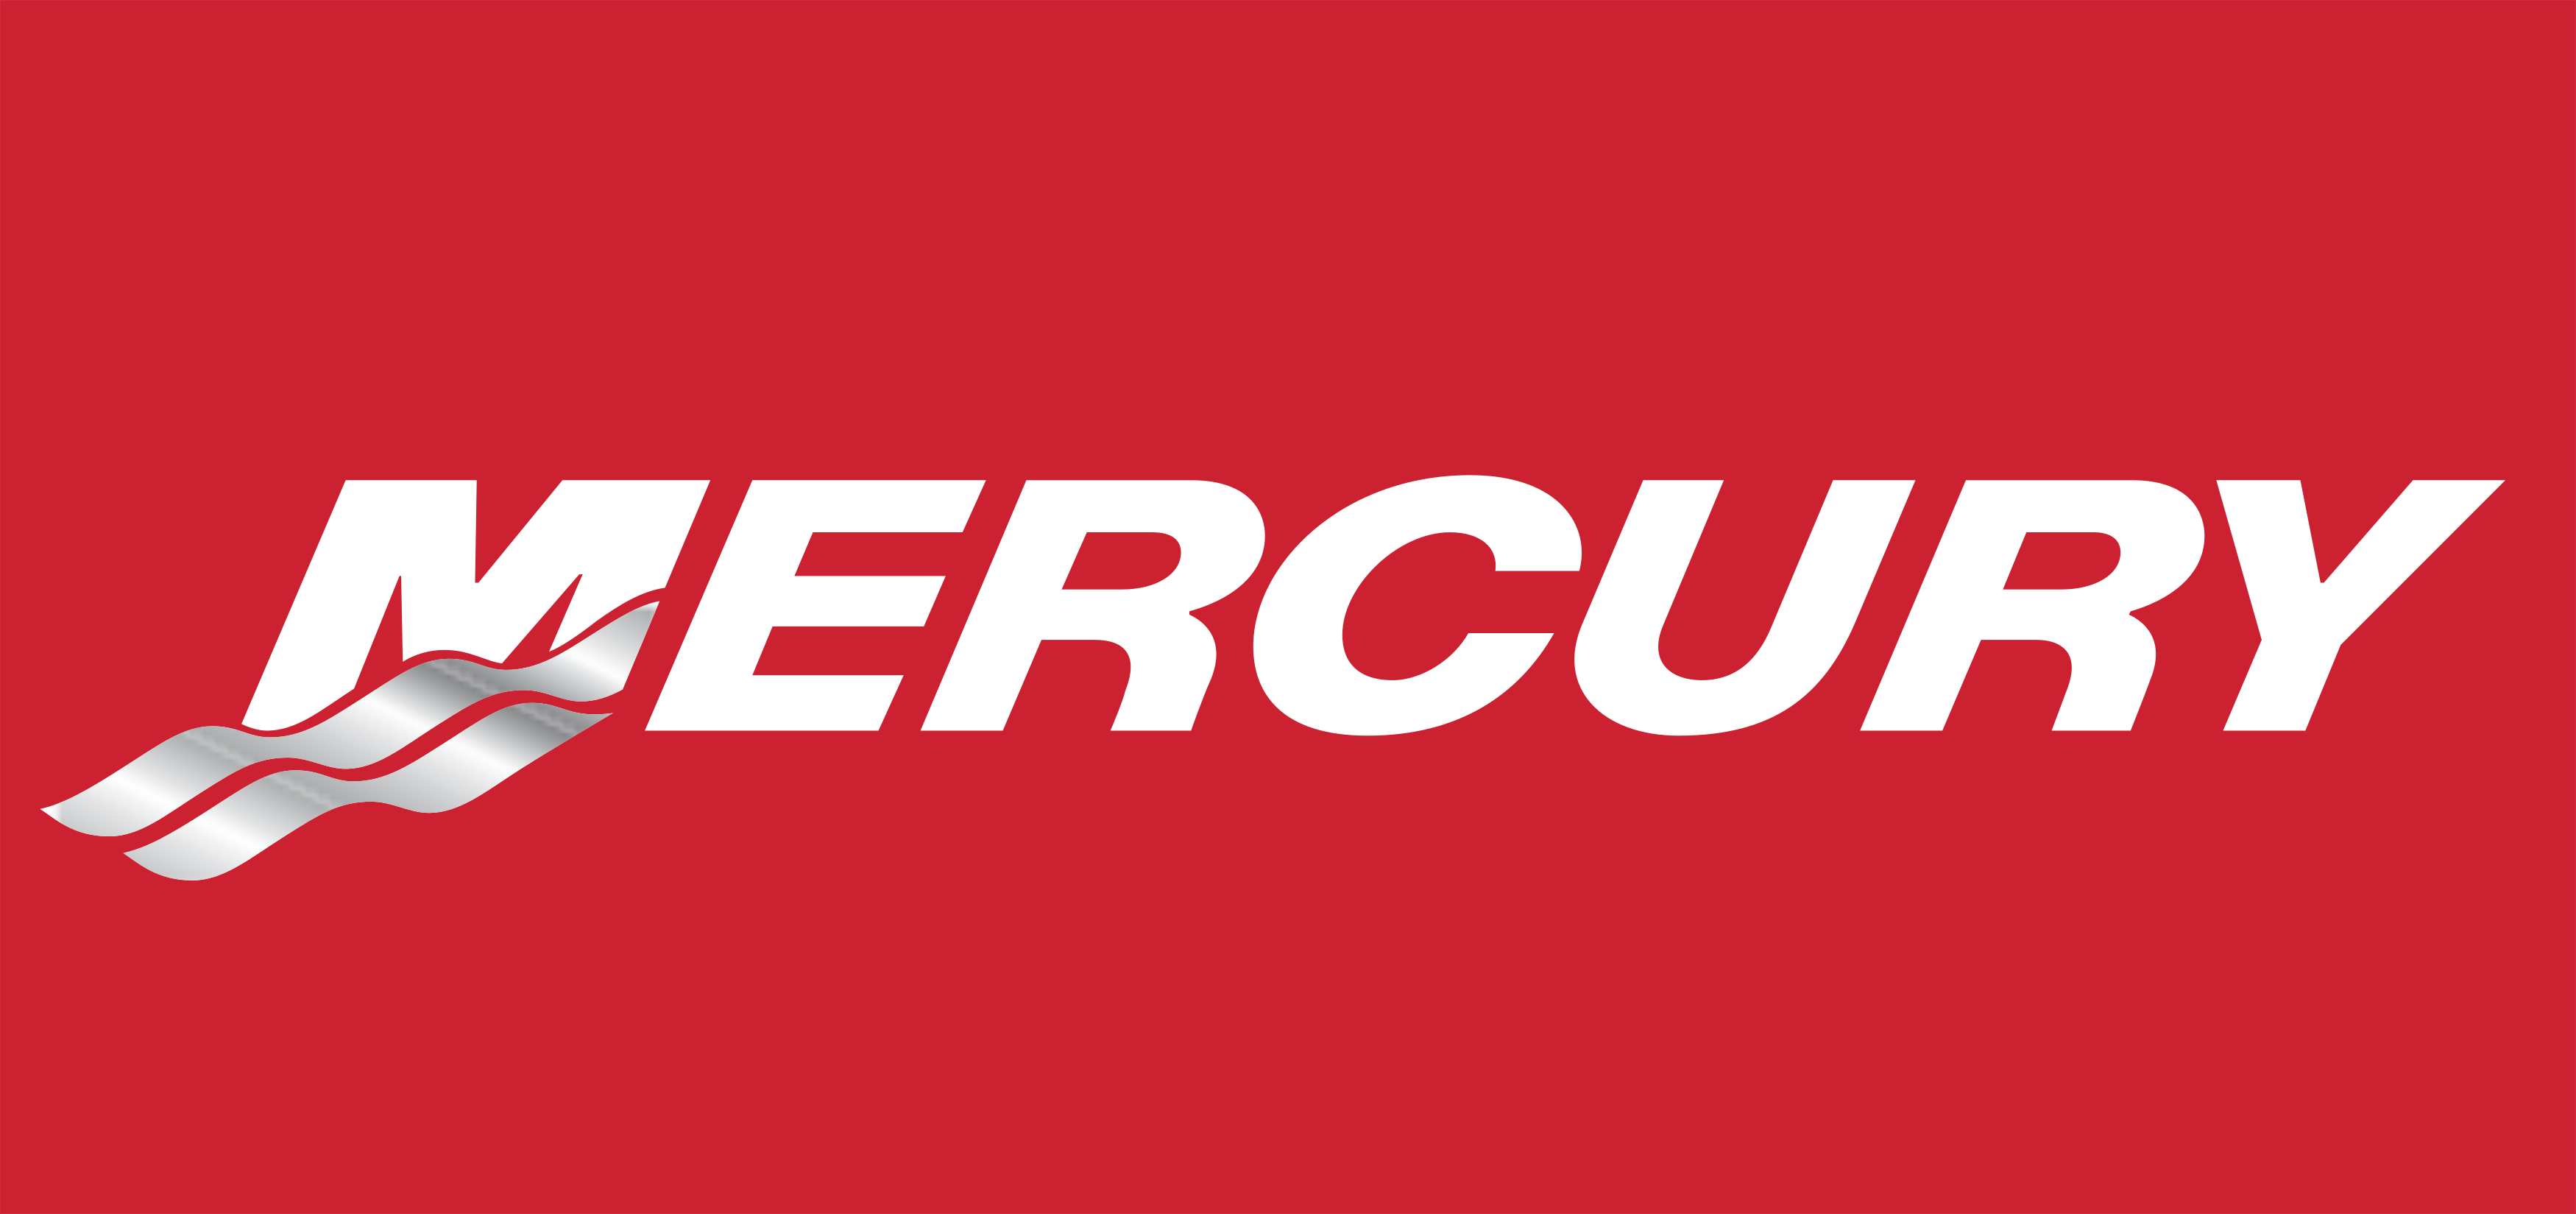 Mariner Outboard Motors >> Mercury Marine Motors Logo - PNG e Vetor - Download de Logo